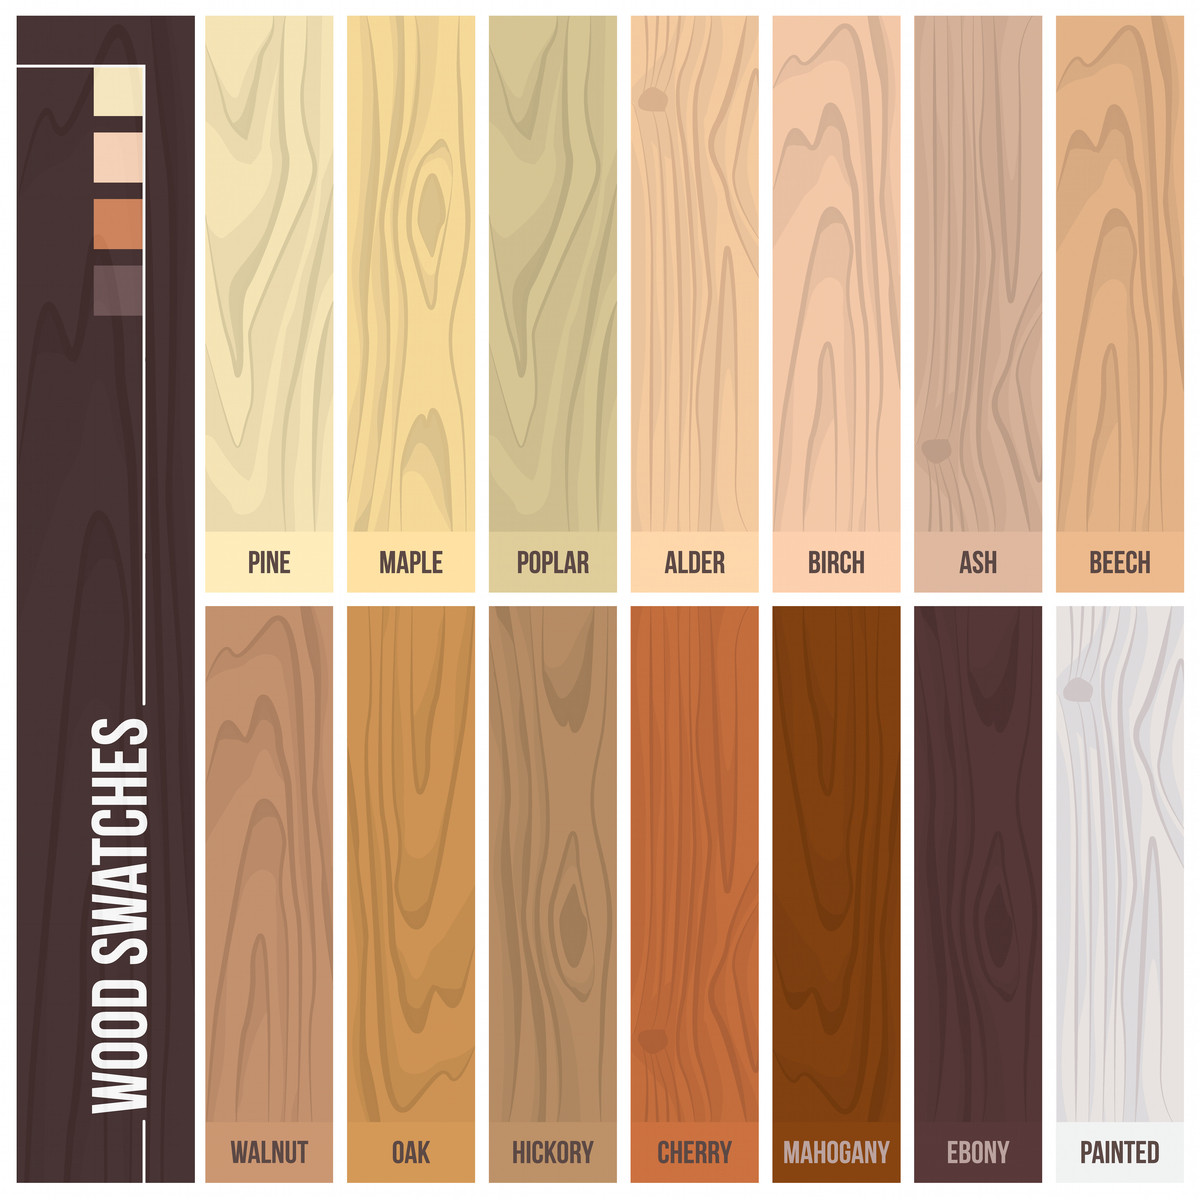 2 1 4 White Oak Hardwood Flooring Unfinished Of 12 Types Of Hardwood Flooring Species Styles Edging Dimensions with Regard to Types Of Hardwood Flooring Illustrated Guide